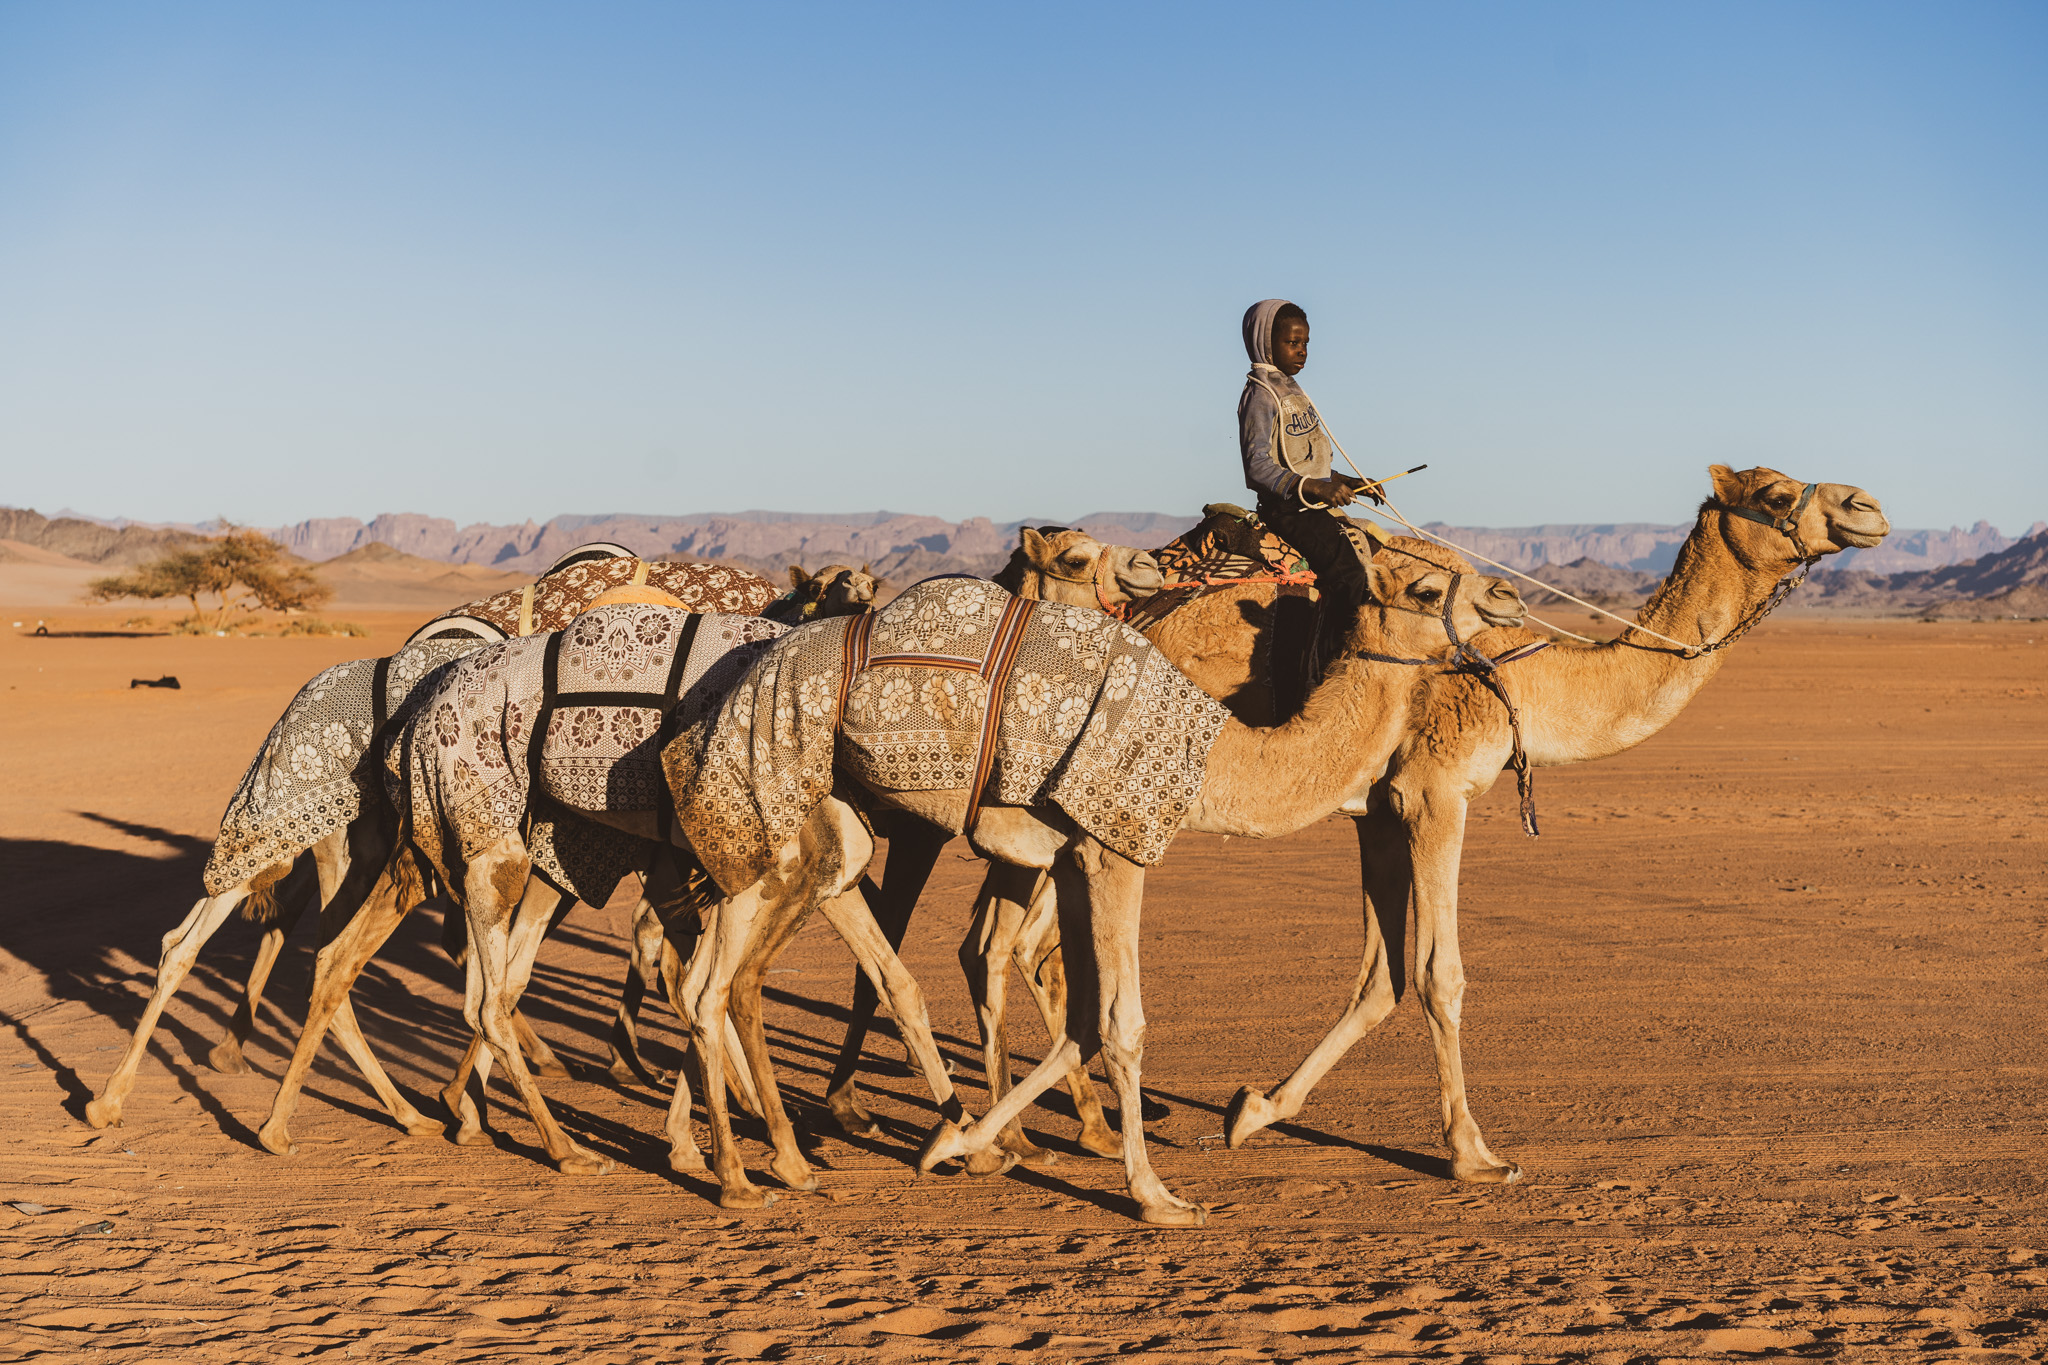 Camels are a pretty common sight while travelling in Saudi Arabia